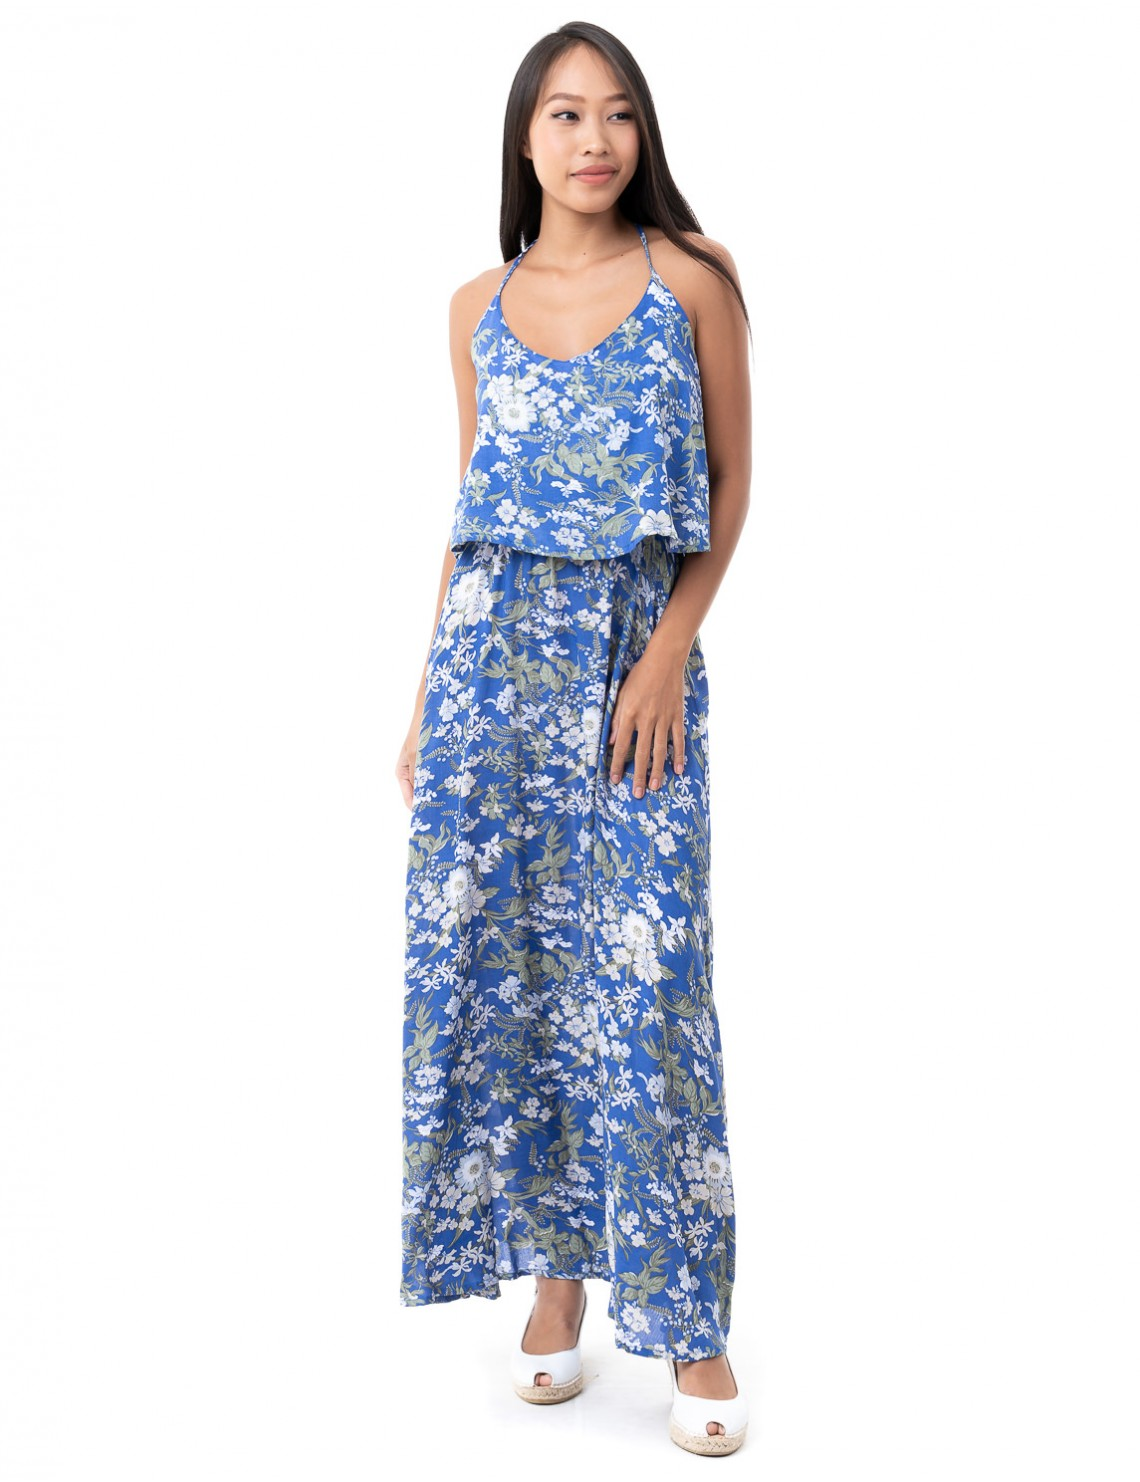 Hawai Maxi Dress - Spring Flower Blue